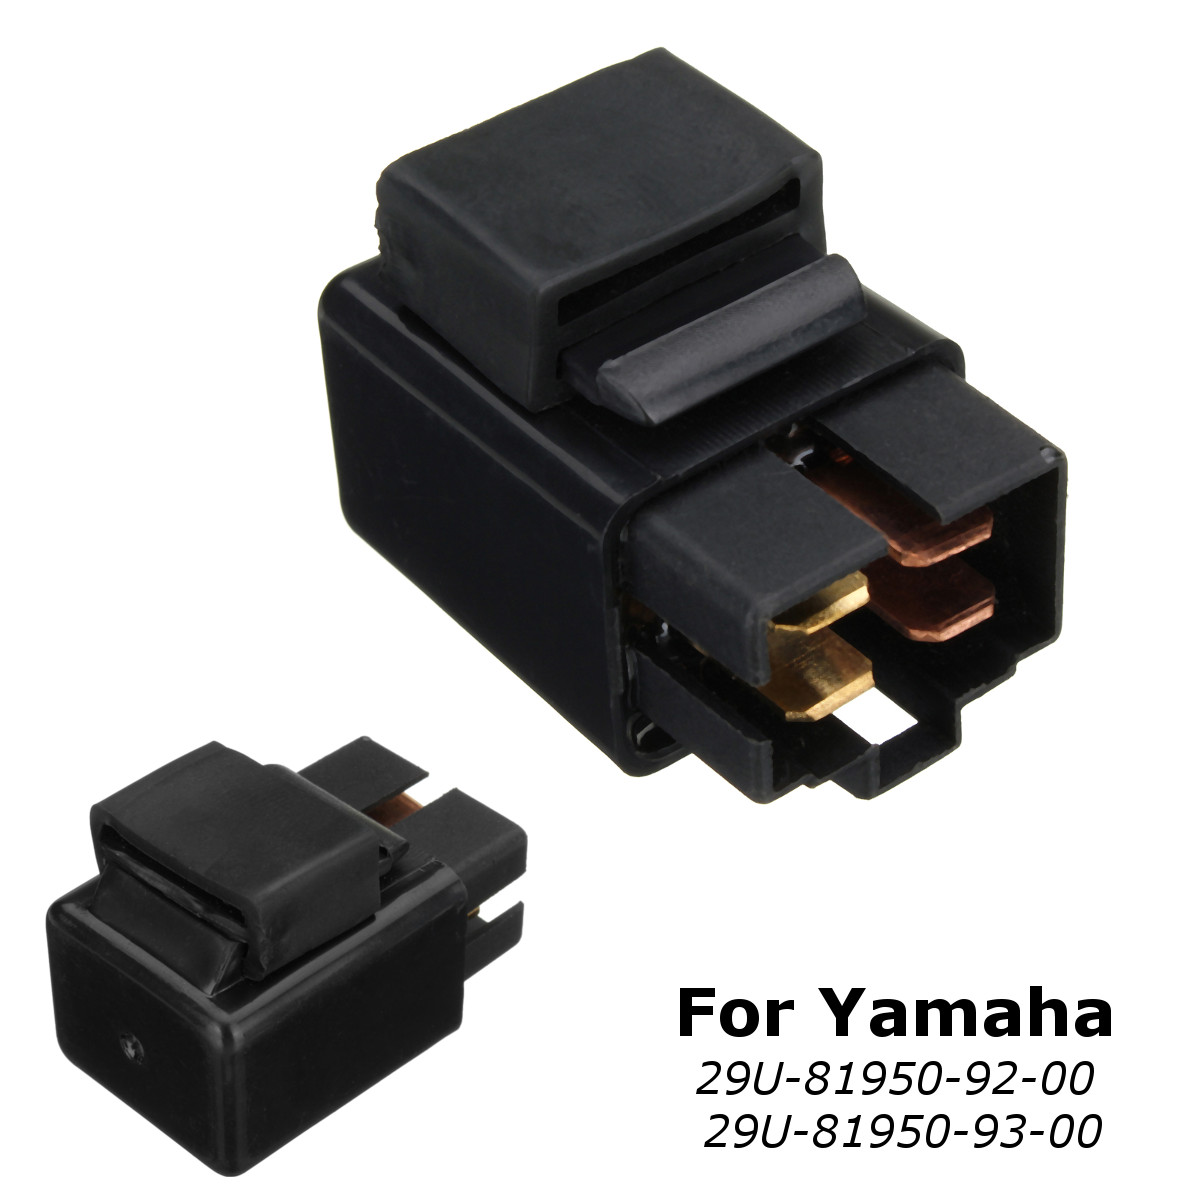 Starter Relay Solenoid Replacement for Yamaha 29U 81950 92 00 29U 81950 93 00-in Motorbike Ingition from Automobiles & Motorcycles